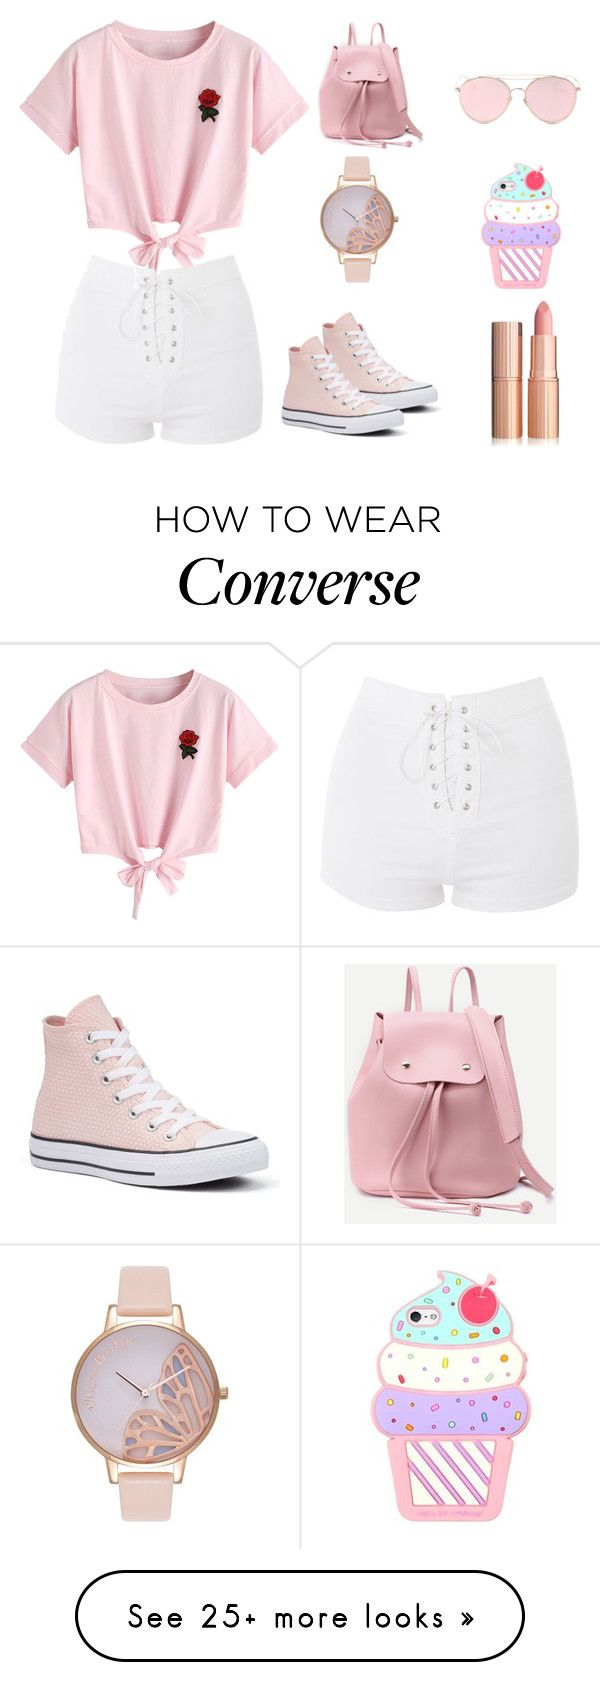 """lookbook"" by stylishnut98 on Polyvore featuring WithChic, Topshop, LMNT, Olivia Burton and Converse"